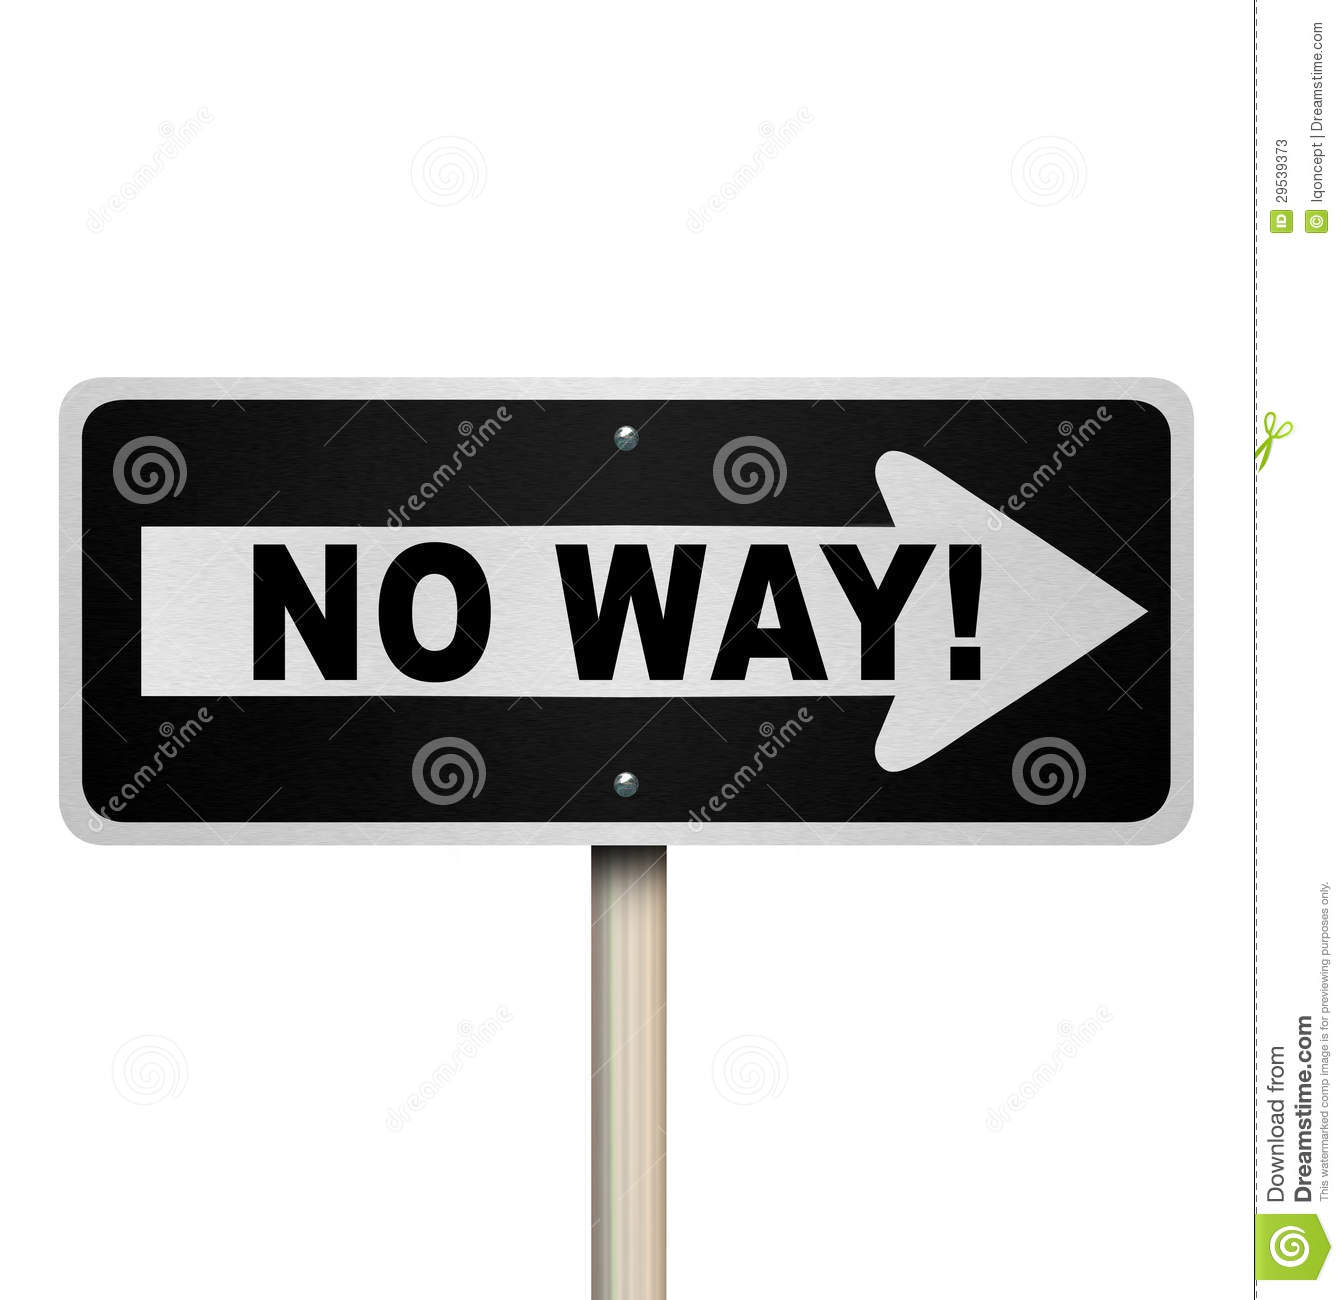 No Way One Way Street Road Sign Denial Rejection Stock Photos   Image